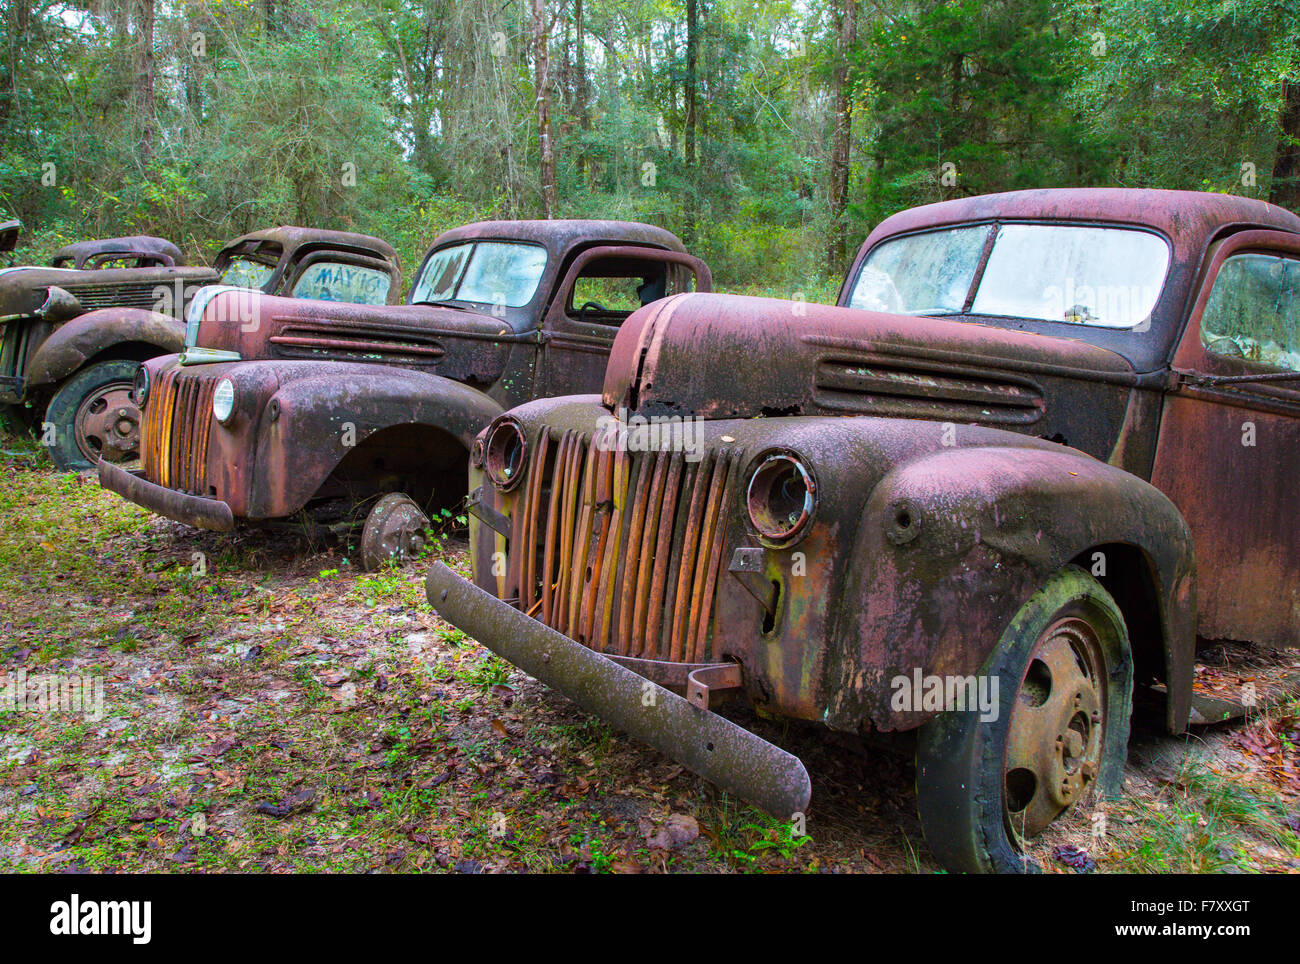 Old rusted abandoned trucks and cars Stock Photo: 90946040 - Alamy